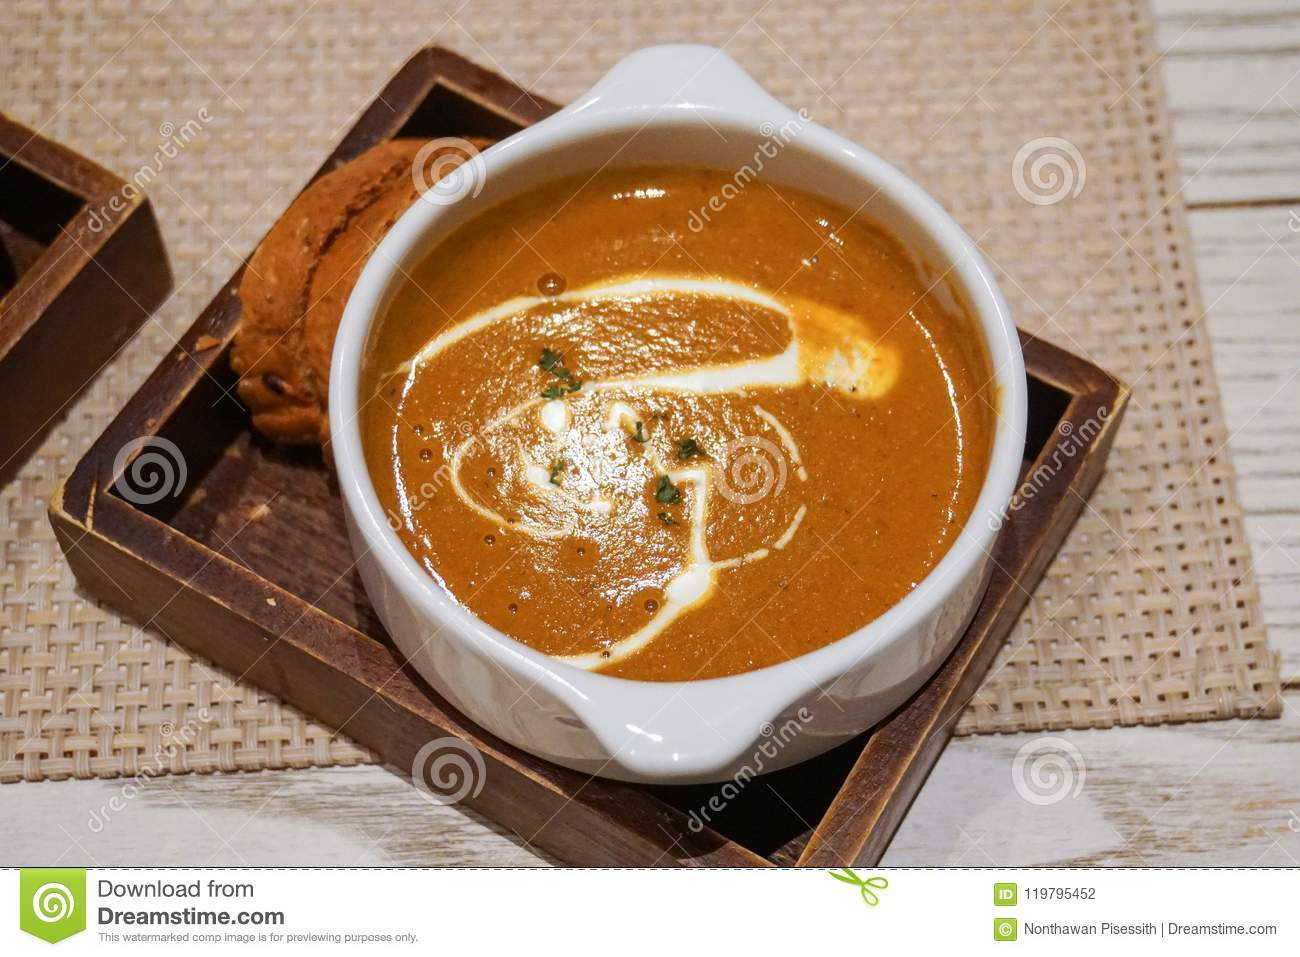 Fish Soup With Bread And Garlic Stock Image ...